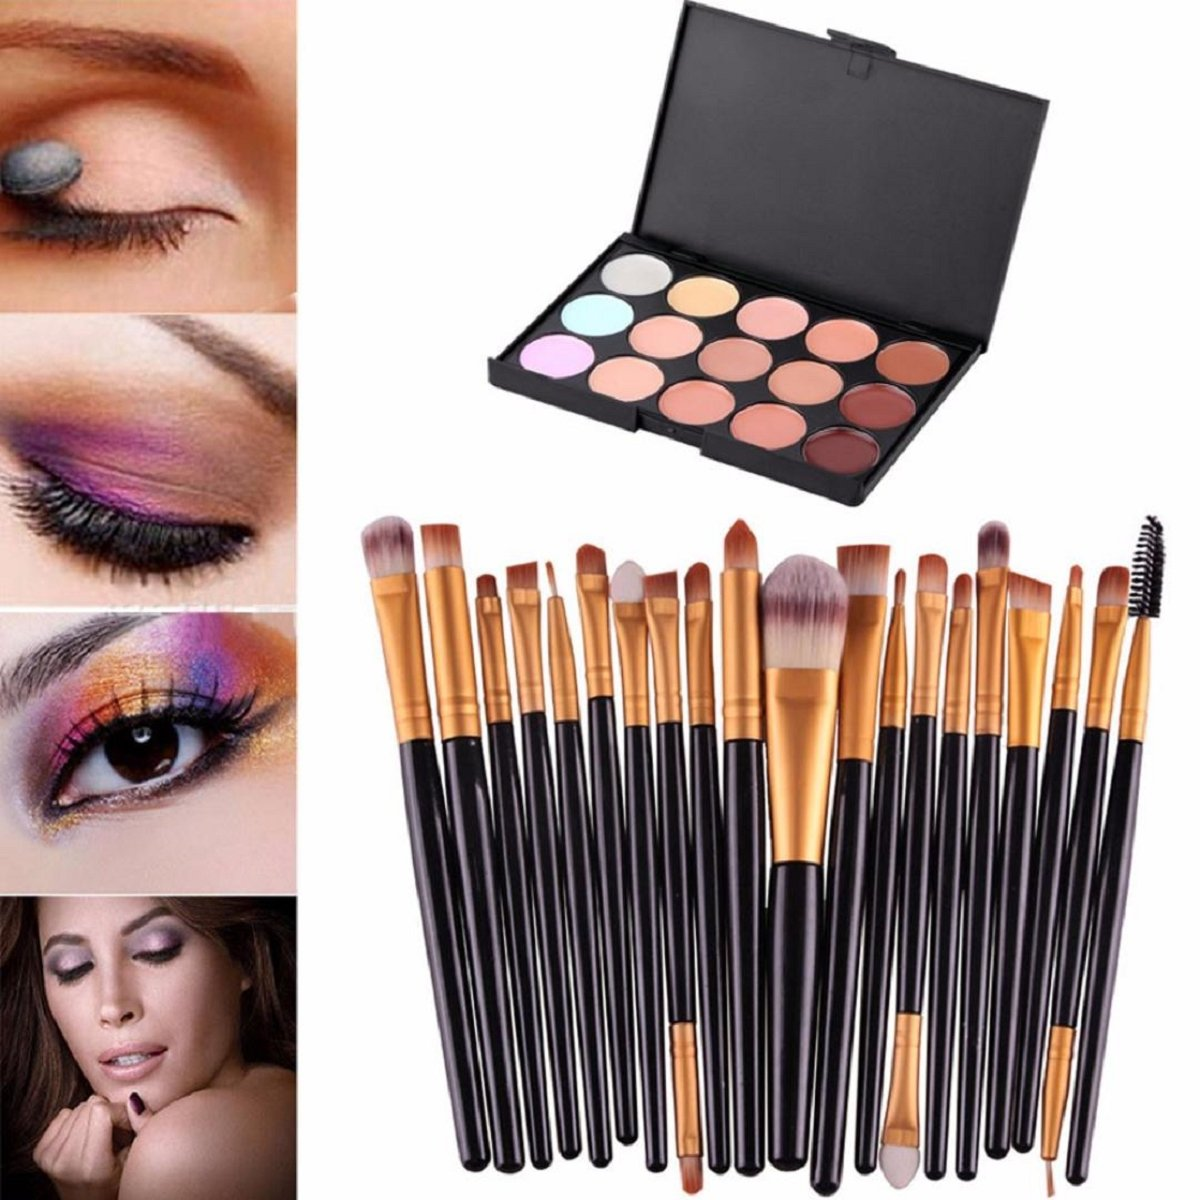 Lookatool 15 Colors Contour Face Cream Makeup Concealer Palette Professional + 20 Brush (Black 1) AK3-AT1-GL-M-X